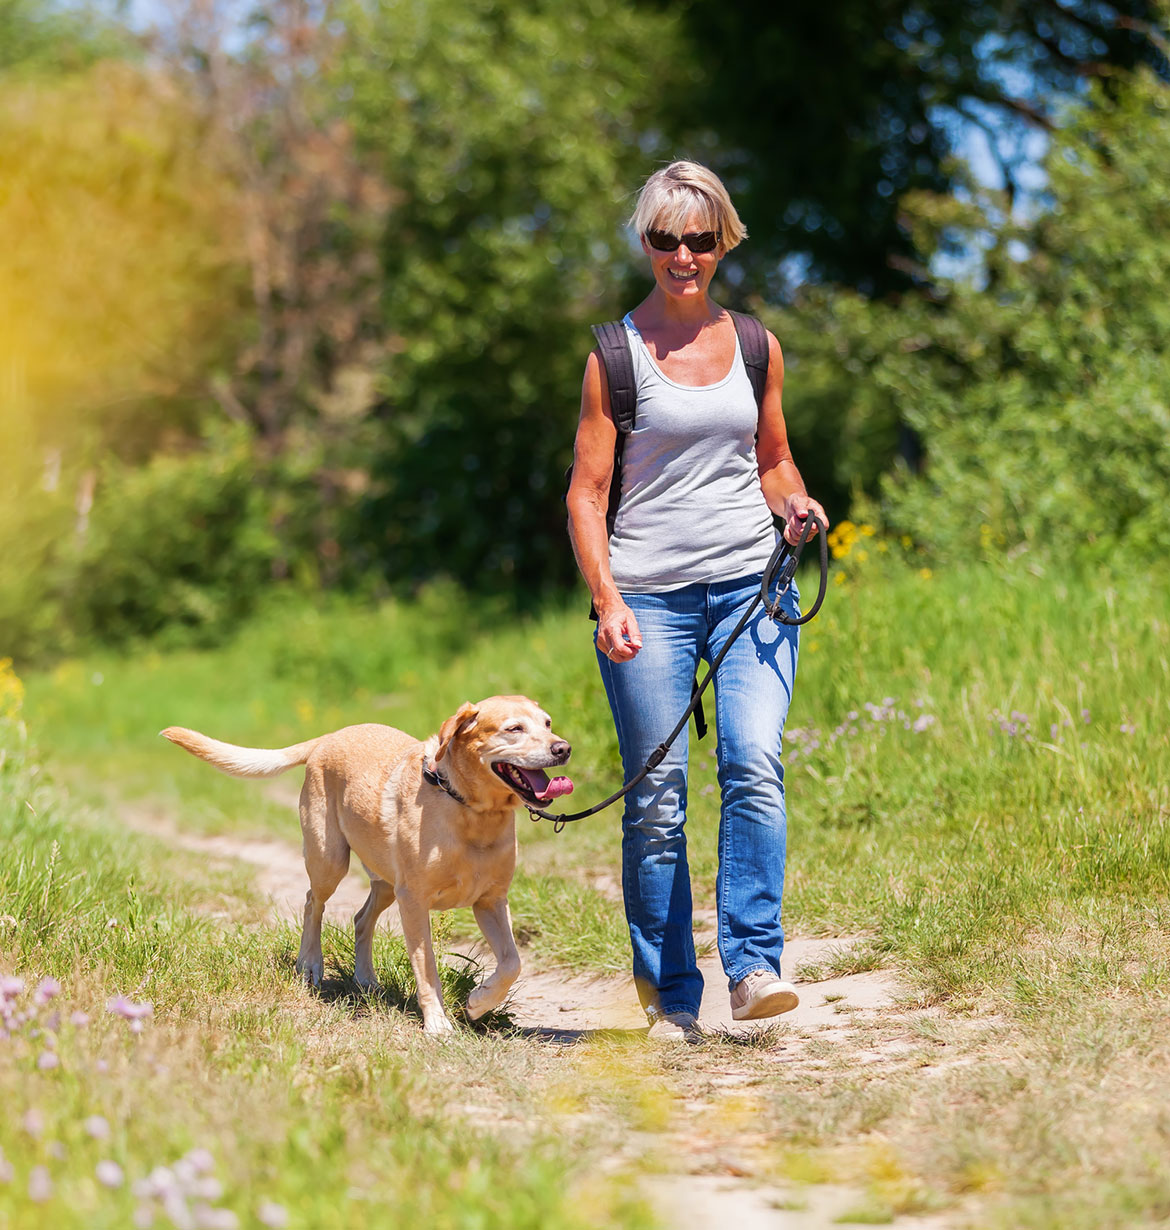 Tuscany with the dog - Holidays with animals